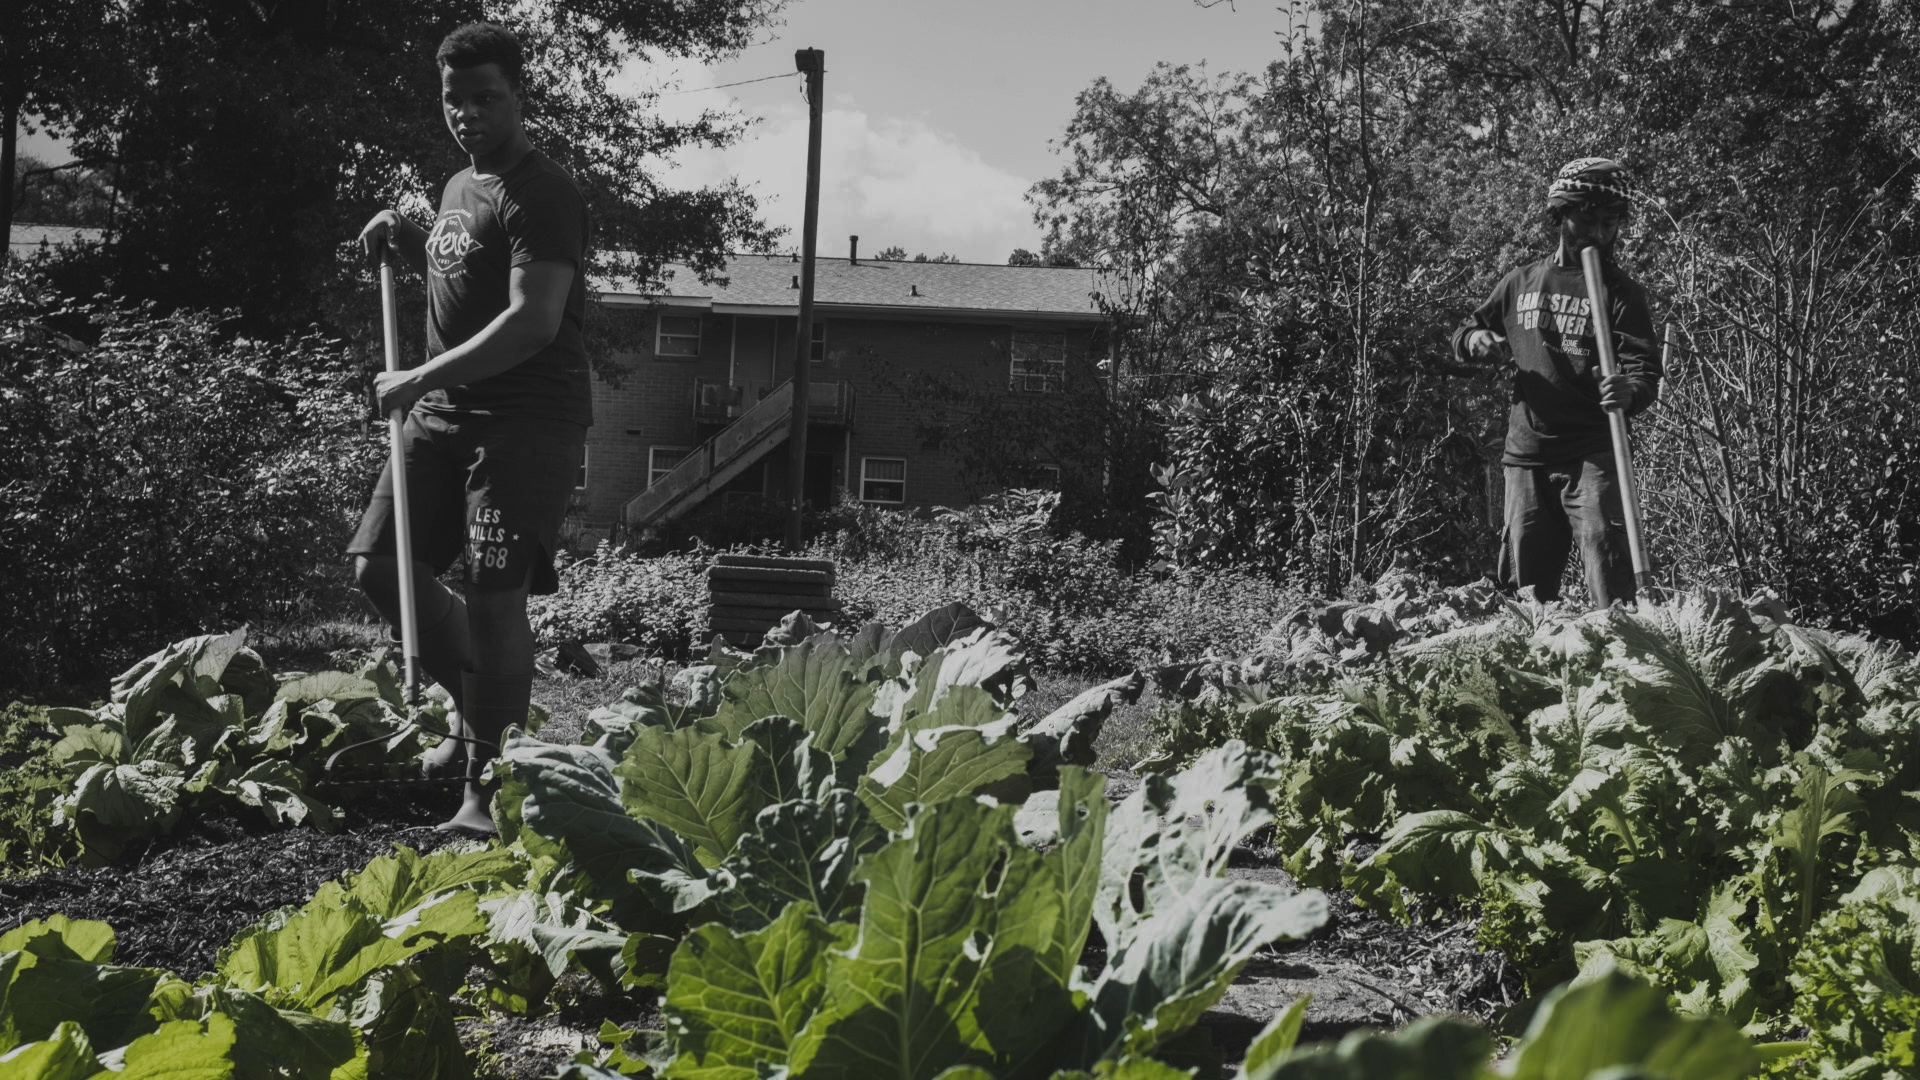 Photograph featuring two Black men working in a garden. The garden's kale leaves are green while the rest of the photo is in black and white.